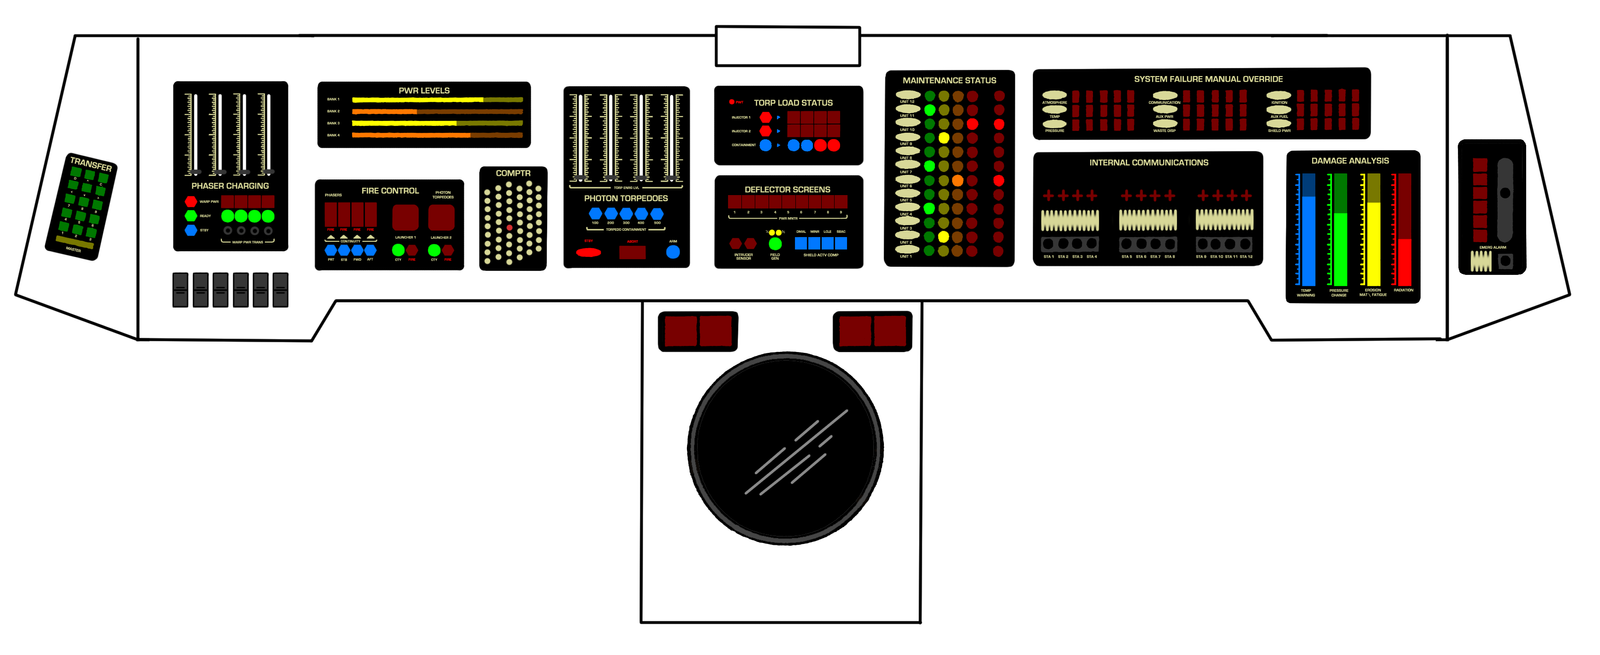 Weapons and d r console tmp by keiichi k1 on deviantart - Star trek online console ...